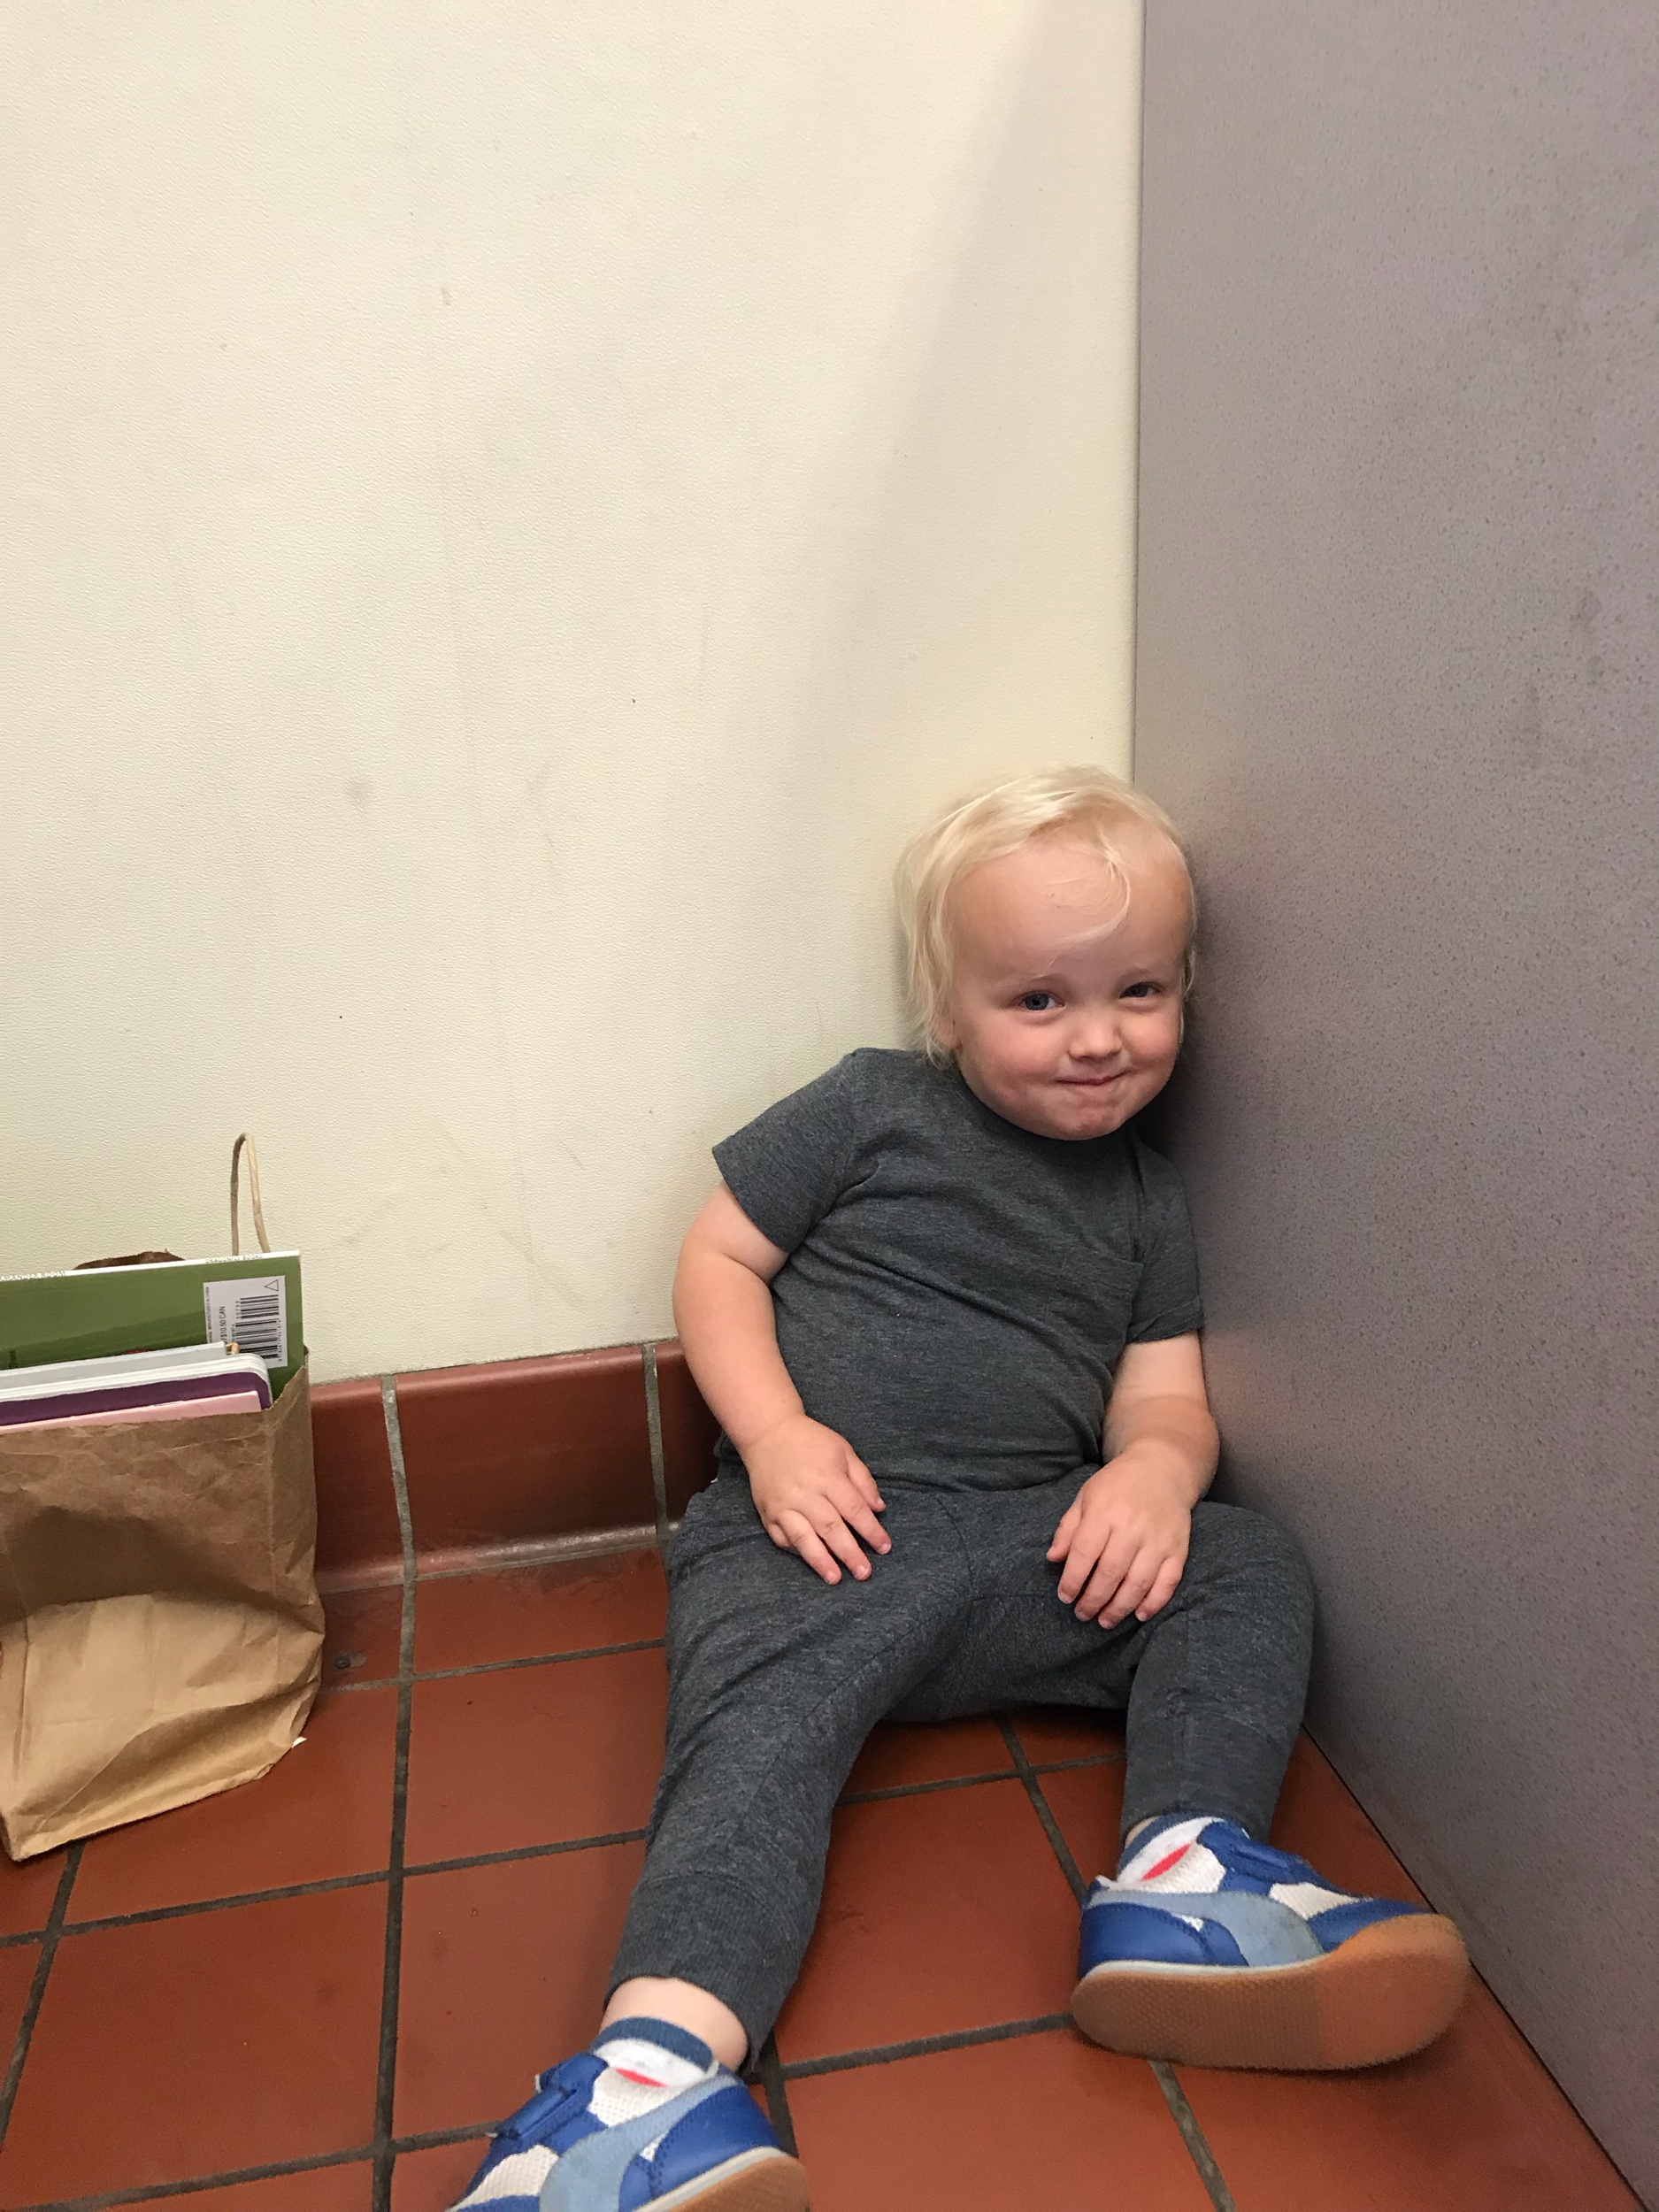 Toddler-age boy sitting in corner of post office with a bag of books.